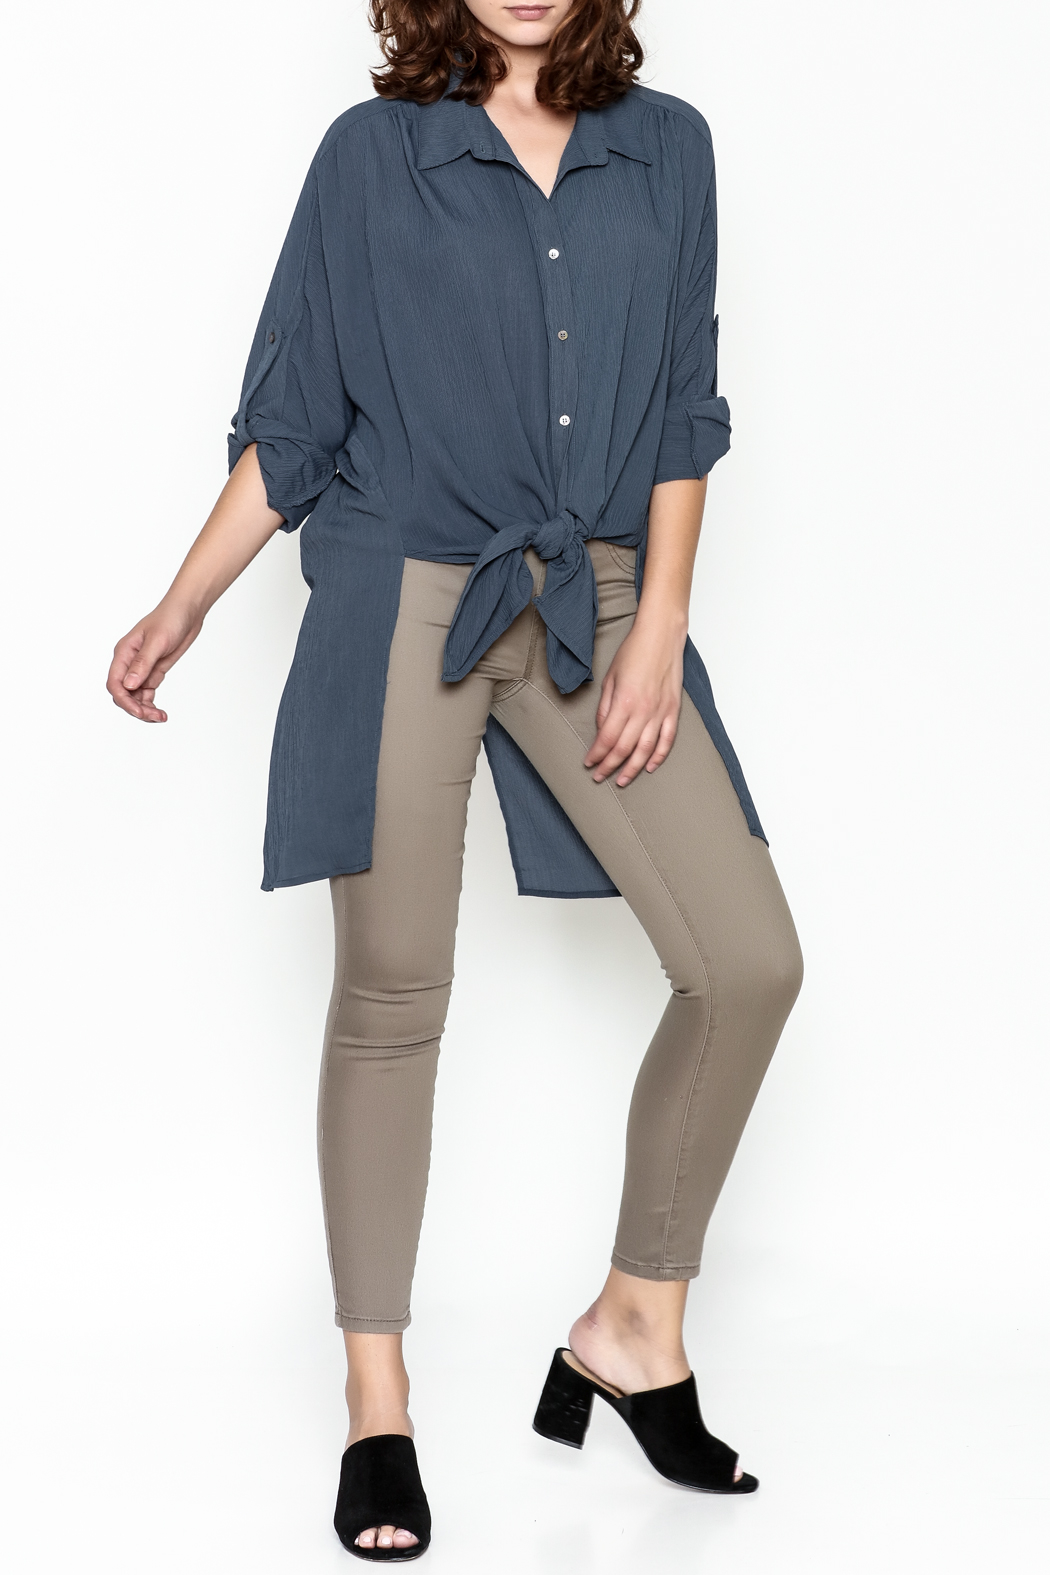 Umgee USA Navy Tie Blouse - Side Cropped Image